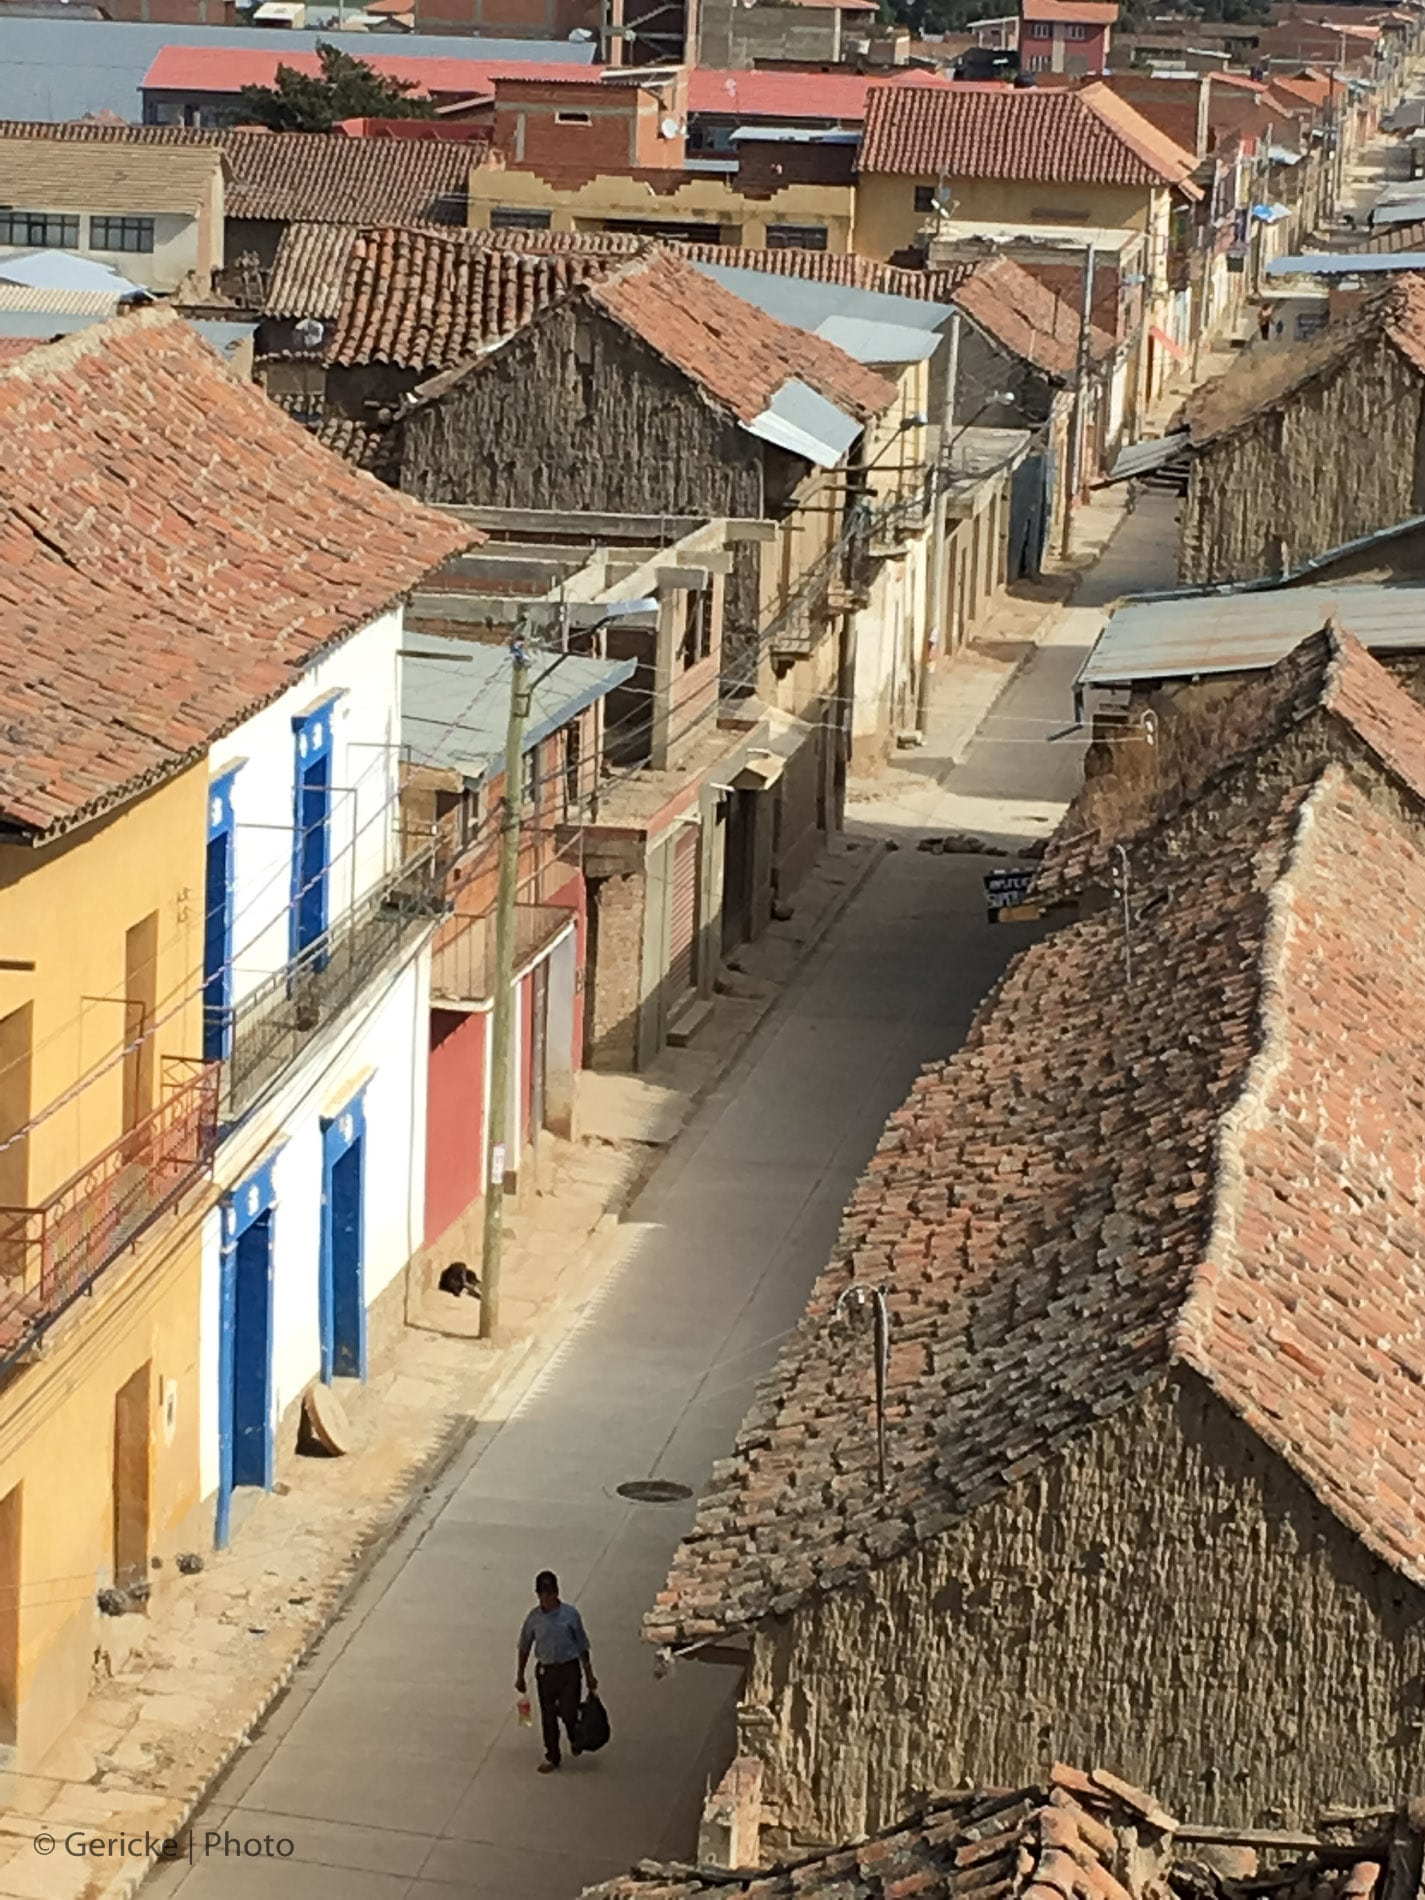 Typical Village in Rural Bolivia